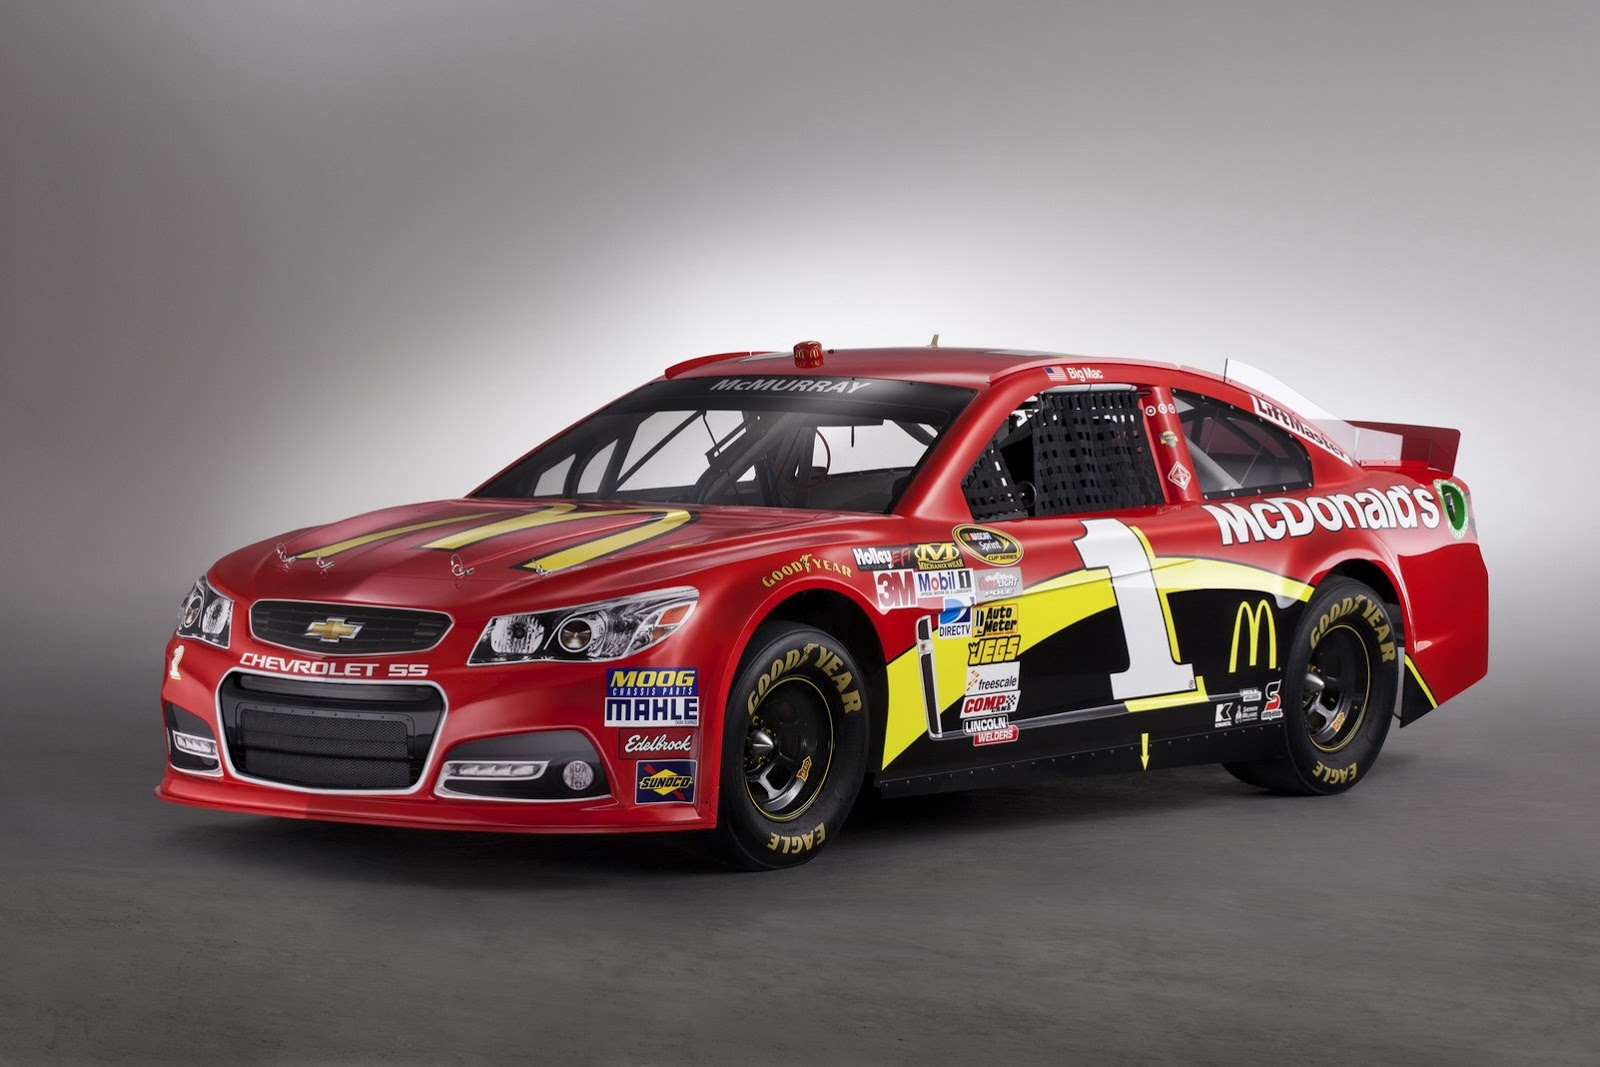 2013 Chevrolet SS NASCAR Race Car - Photo #